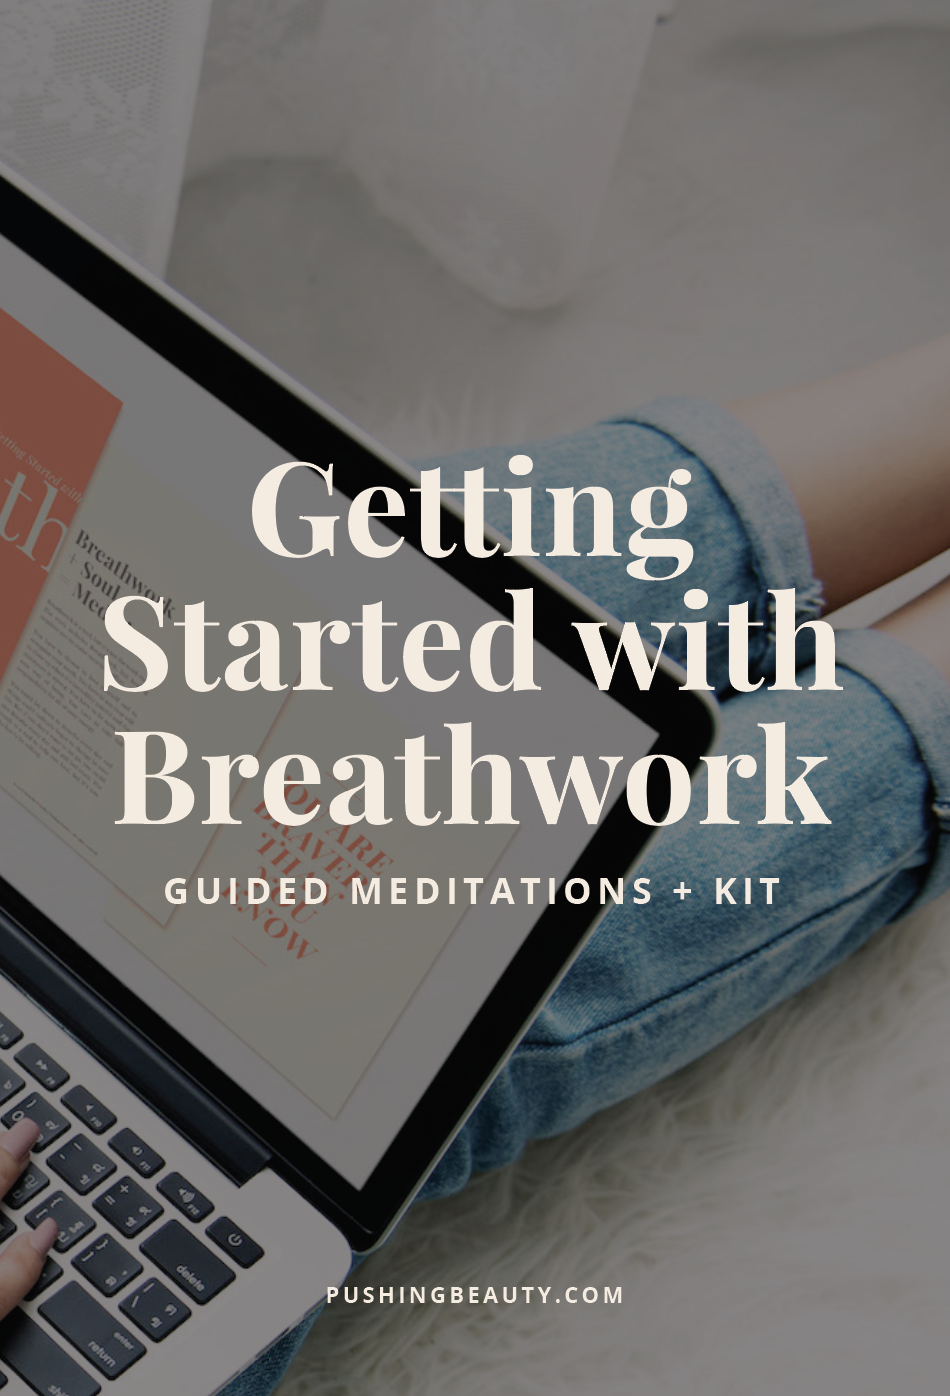 GETTING-STARTED-WITH-BREATHWORK-01.png